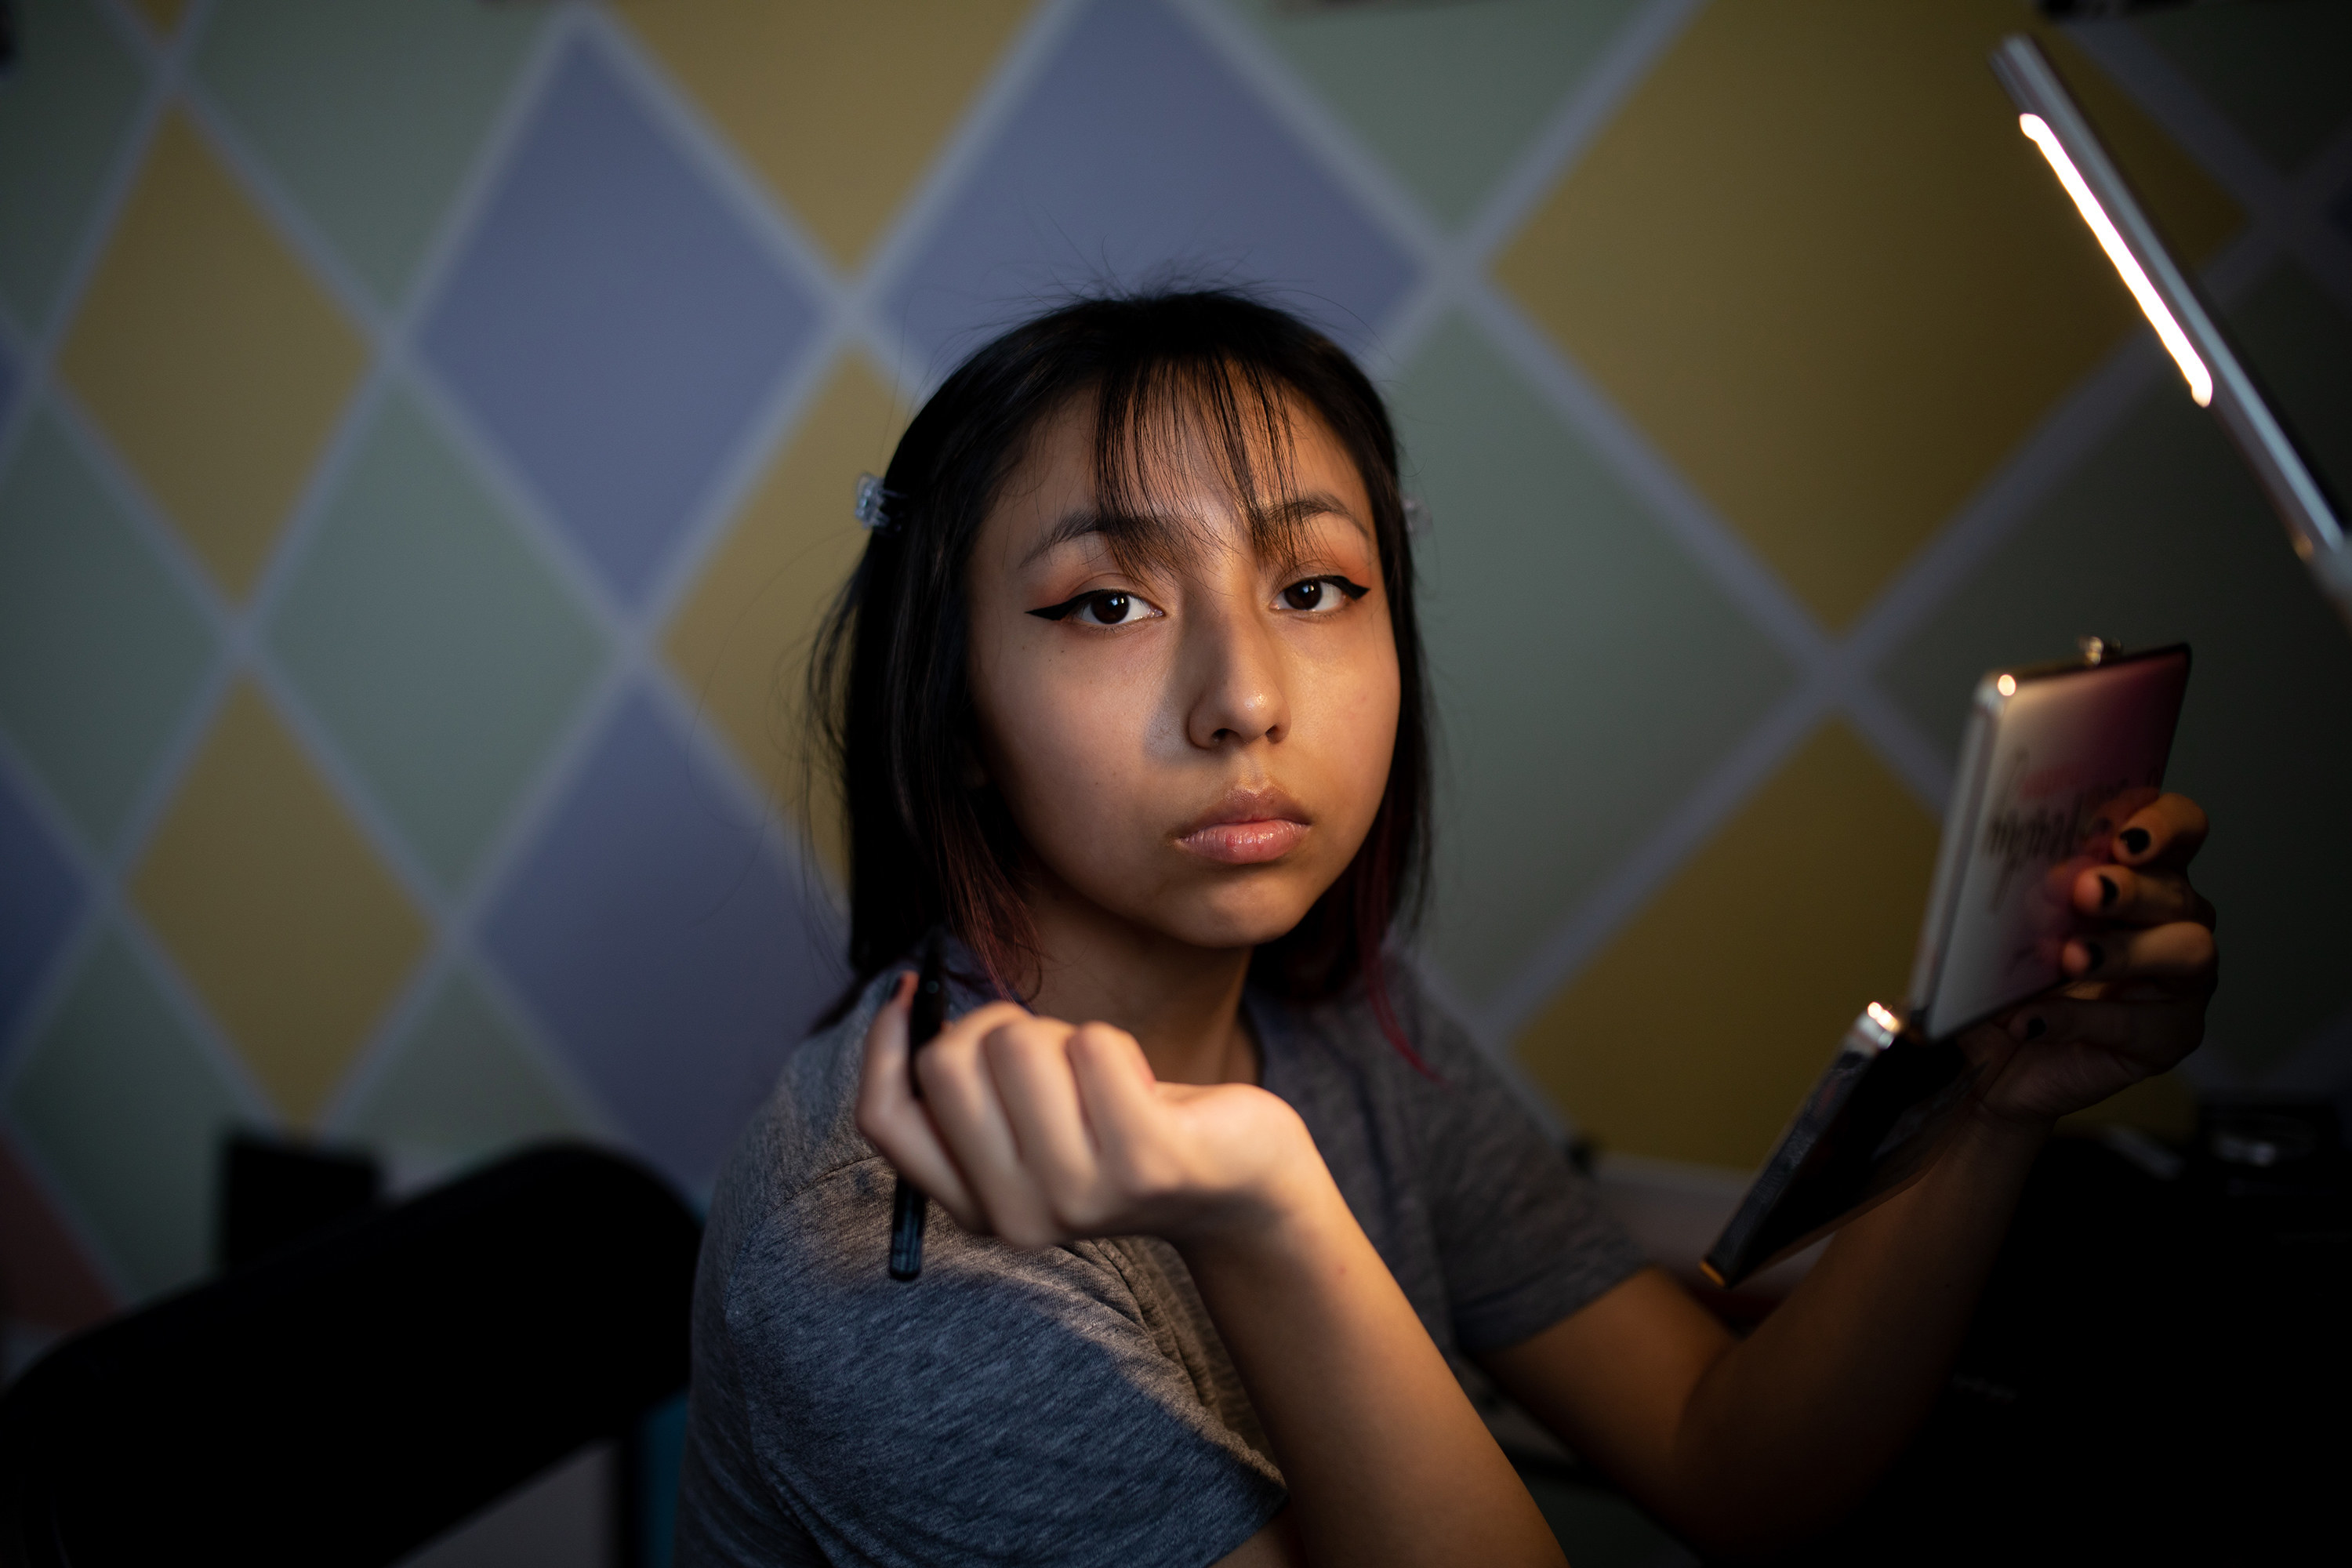 A young girl sits indoors with a tablet and pen, looking at the camera